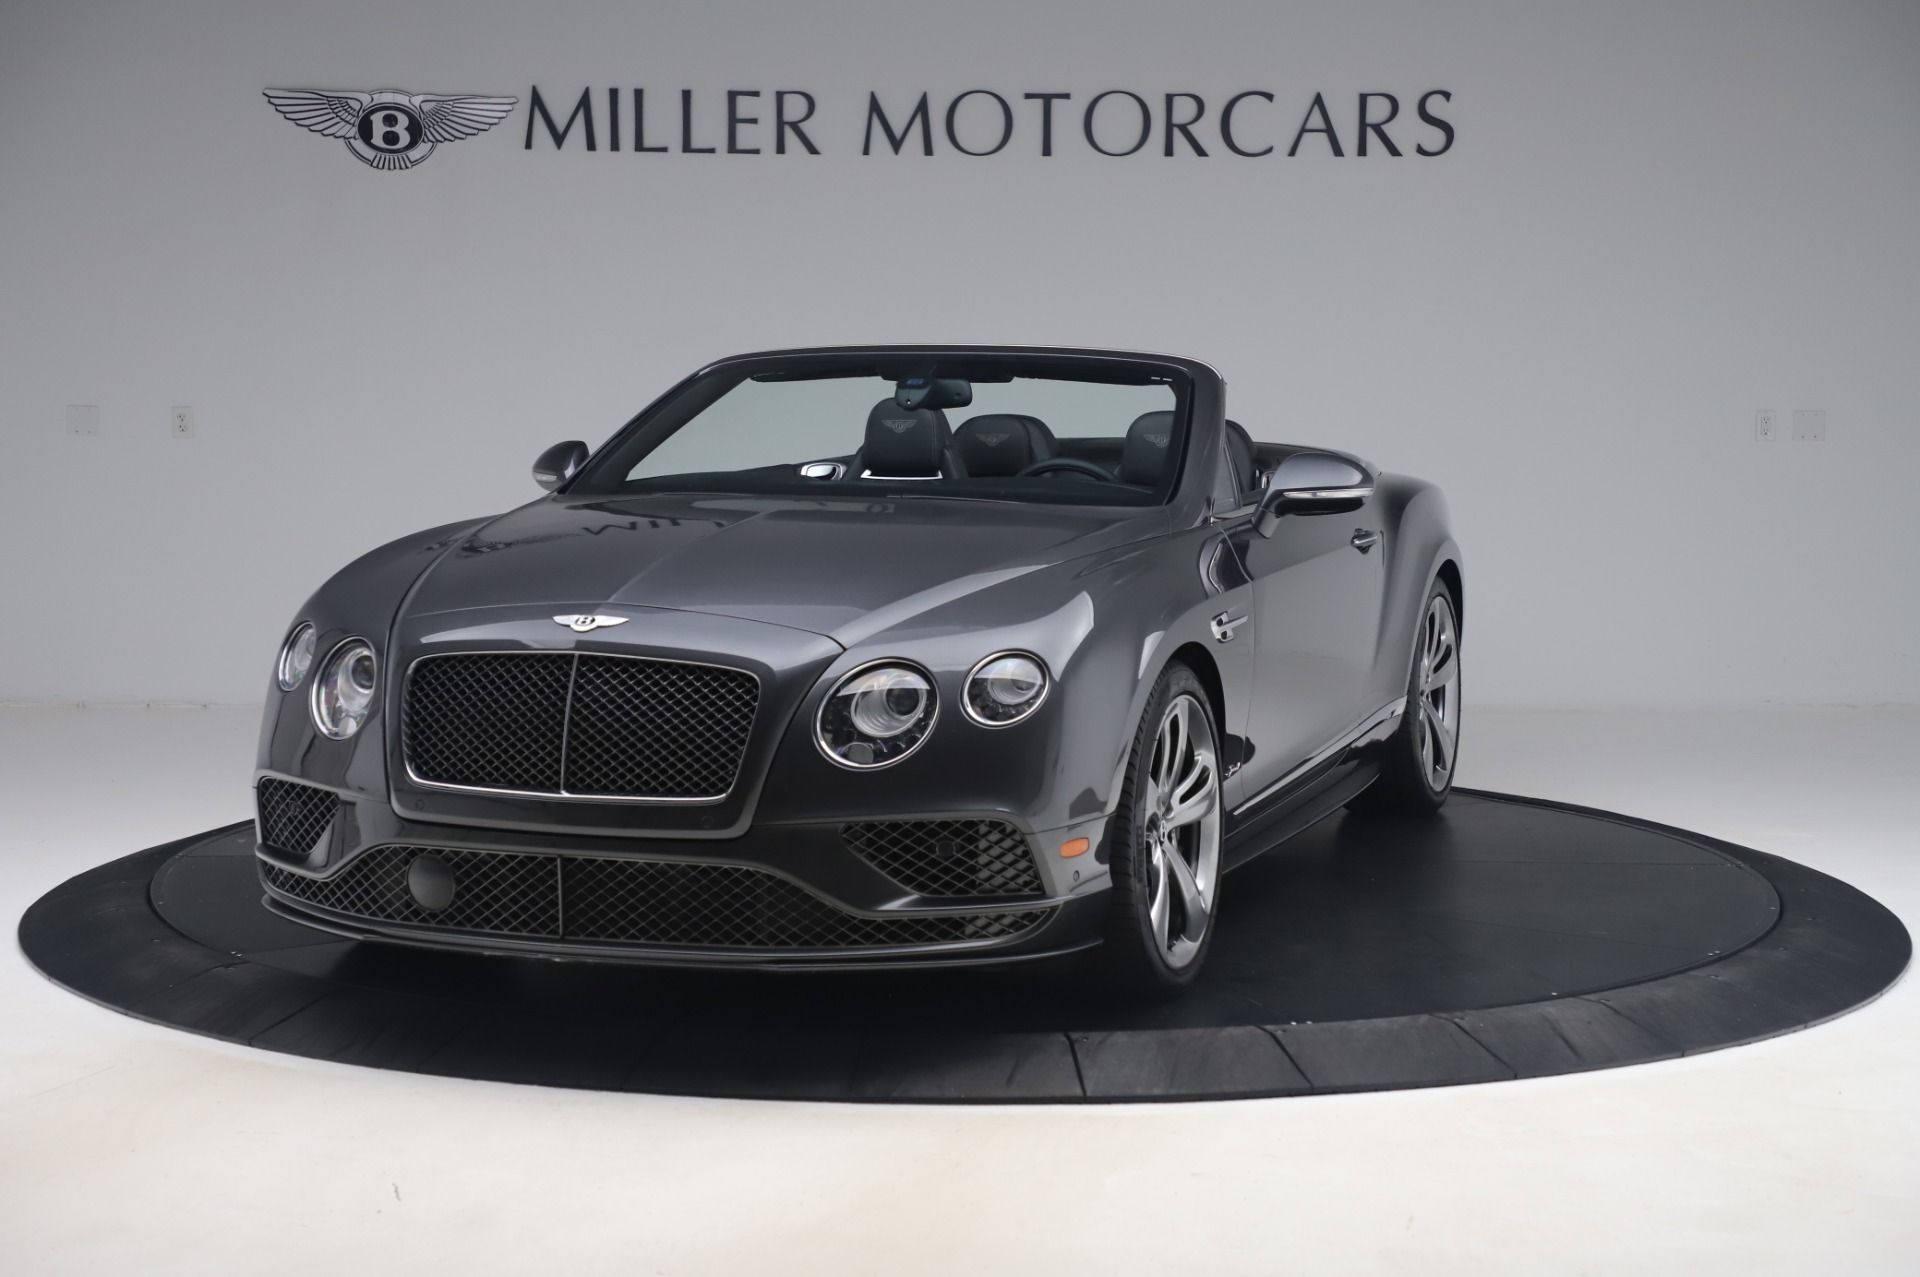 Used 2016 Bentley Continental GTC Speed for sale $146,900 at Bentley Greenwich in Greenwich CT 06830 1